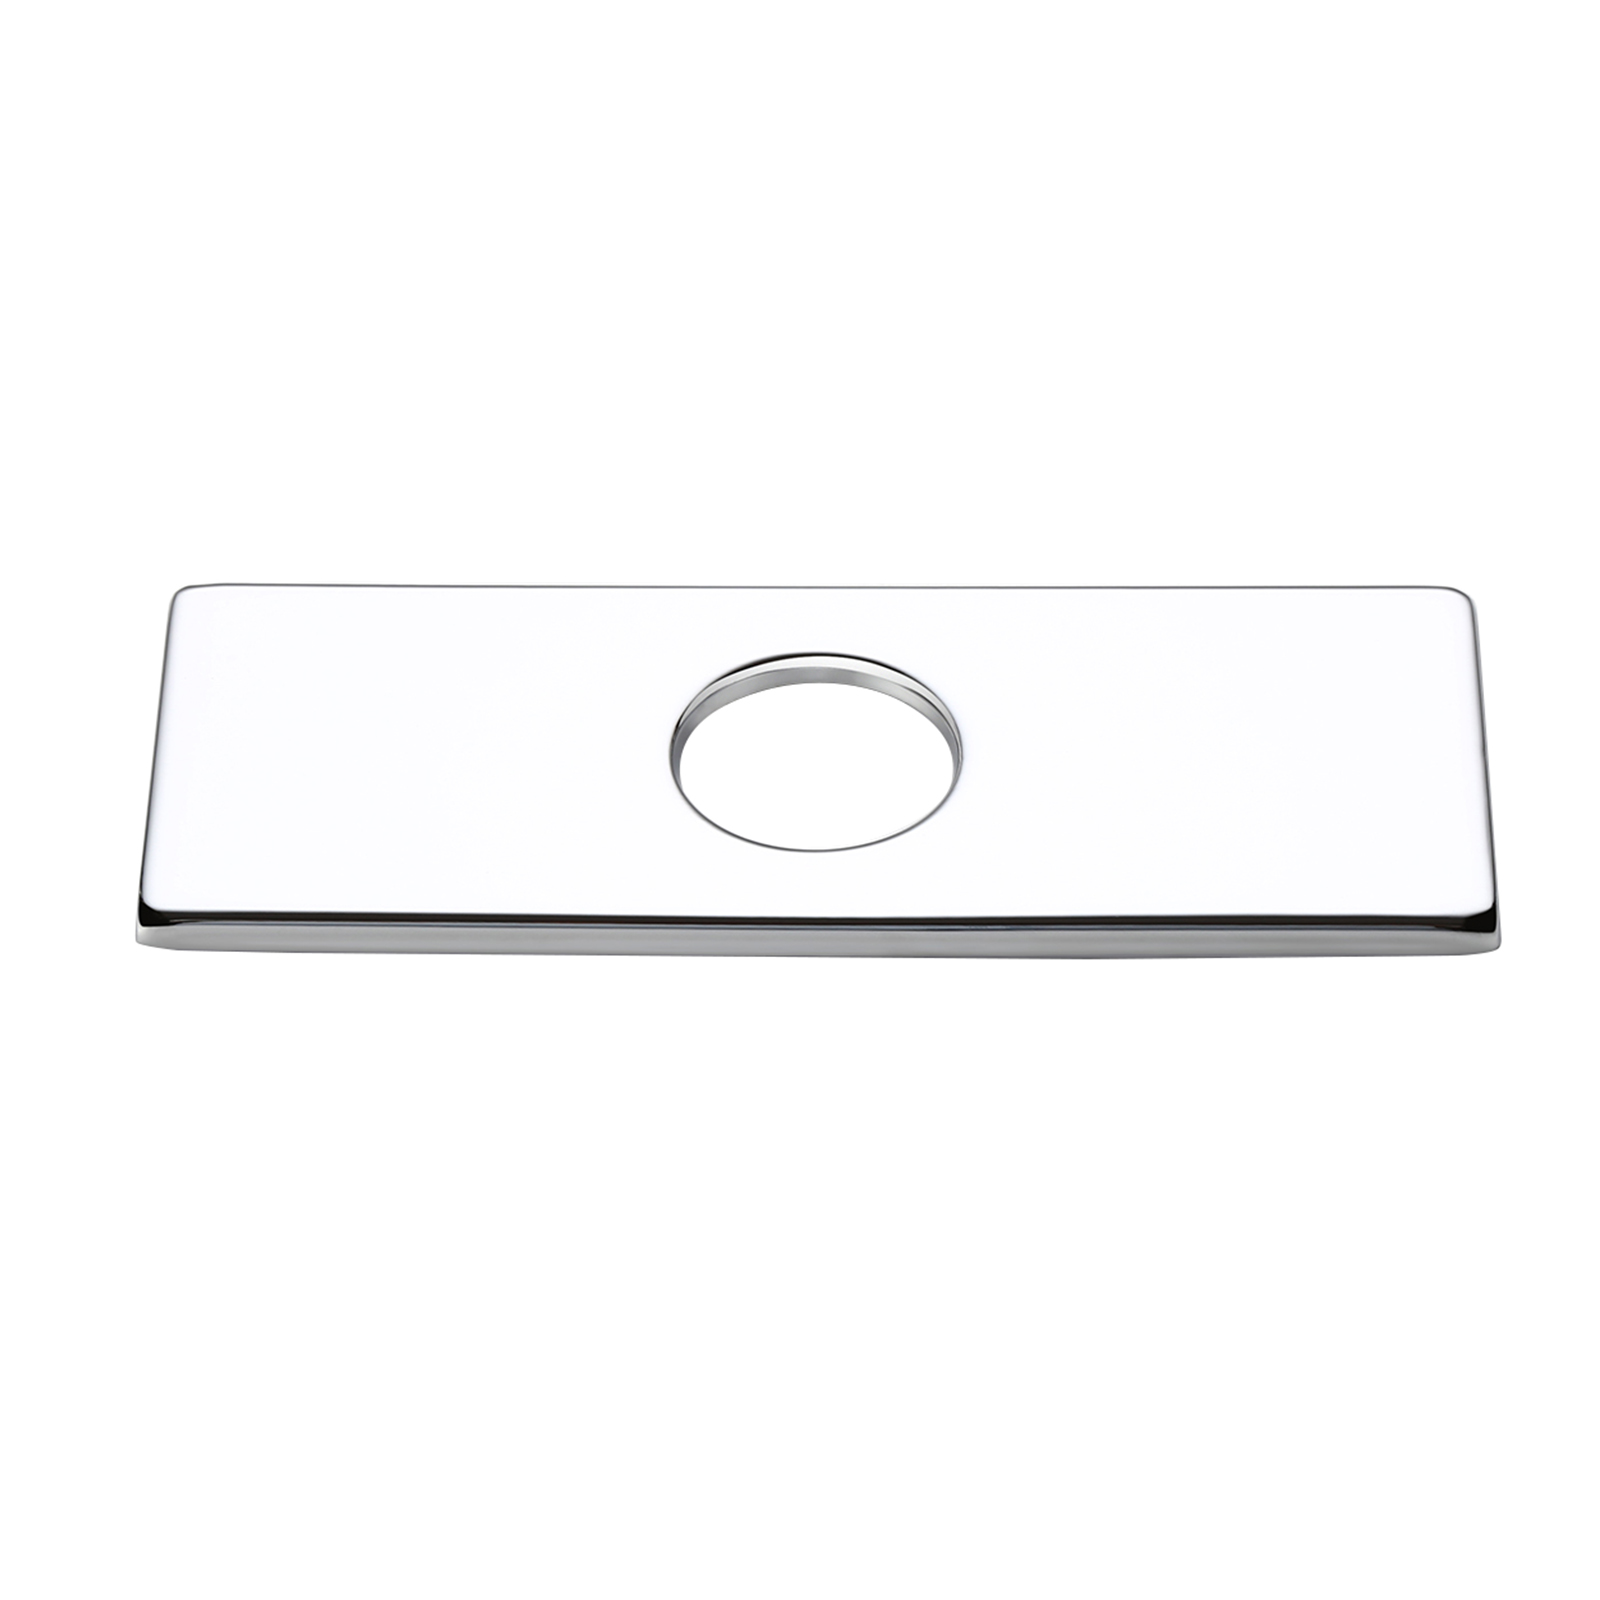 4 inches stainless steel rectangular escutcheon plate bathroom vanity sink faucet hole cover deck plate polished chrome